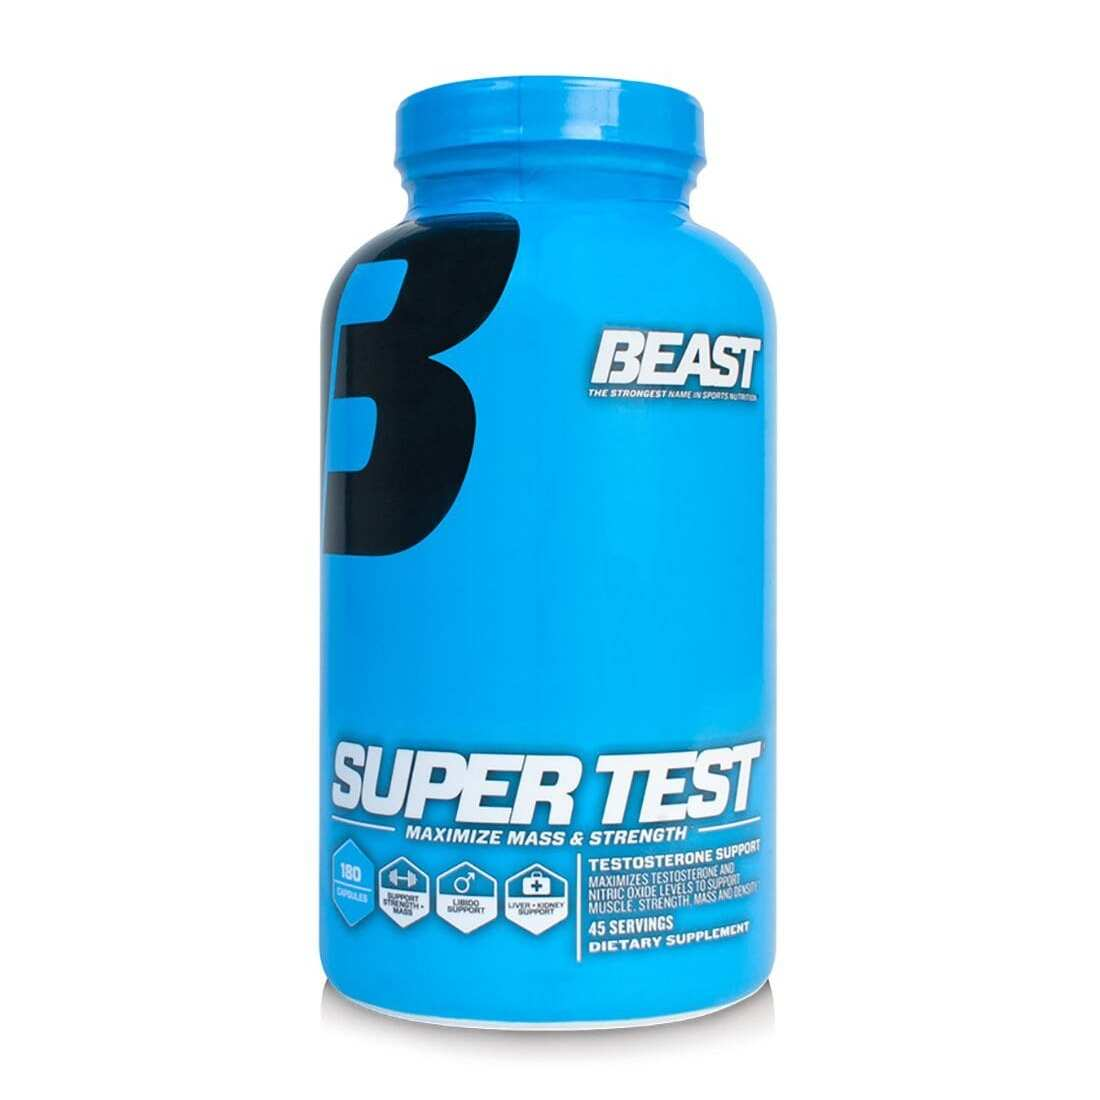 Super Test - 180 Capsules - Beast Sports Nutrition-0